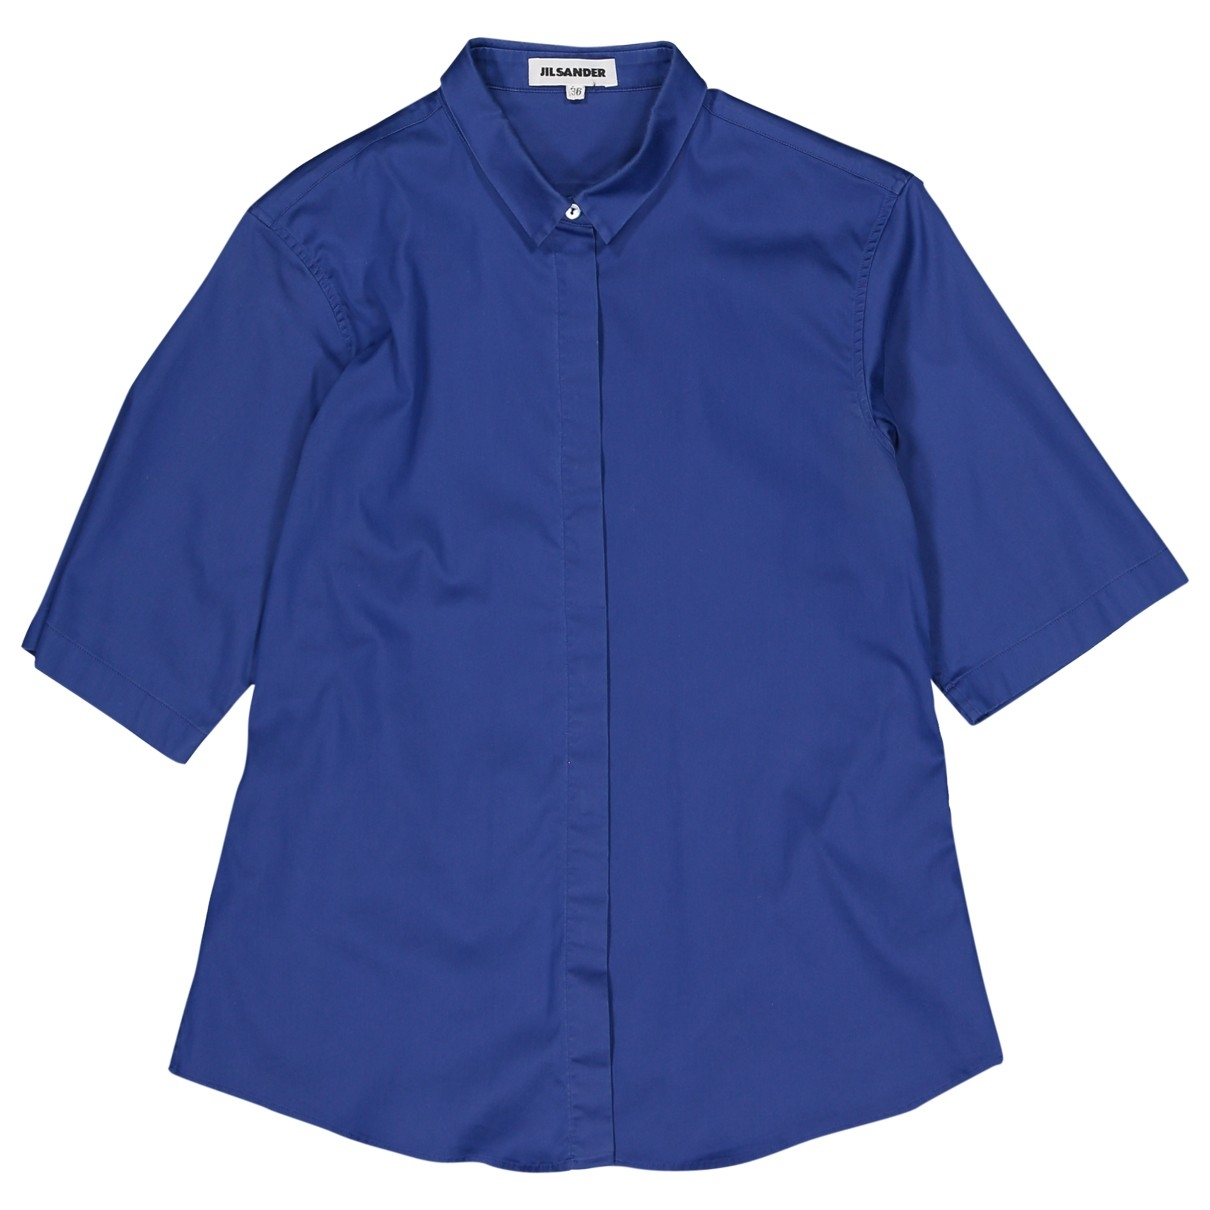 Jil Sander \N Blue Cotton  top for Women 36 FR